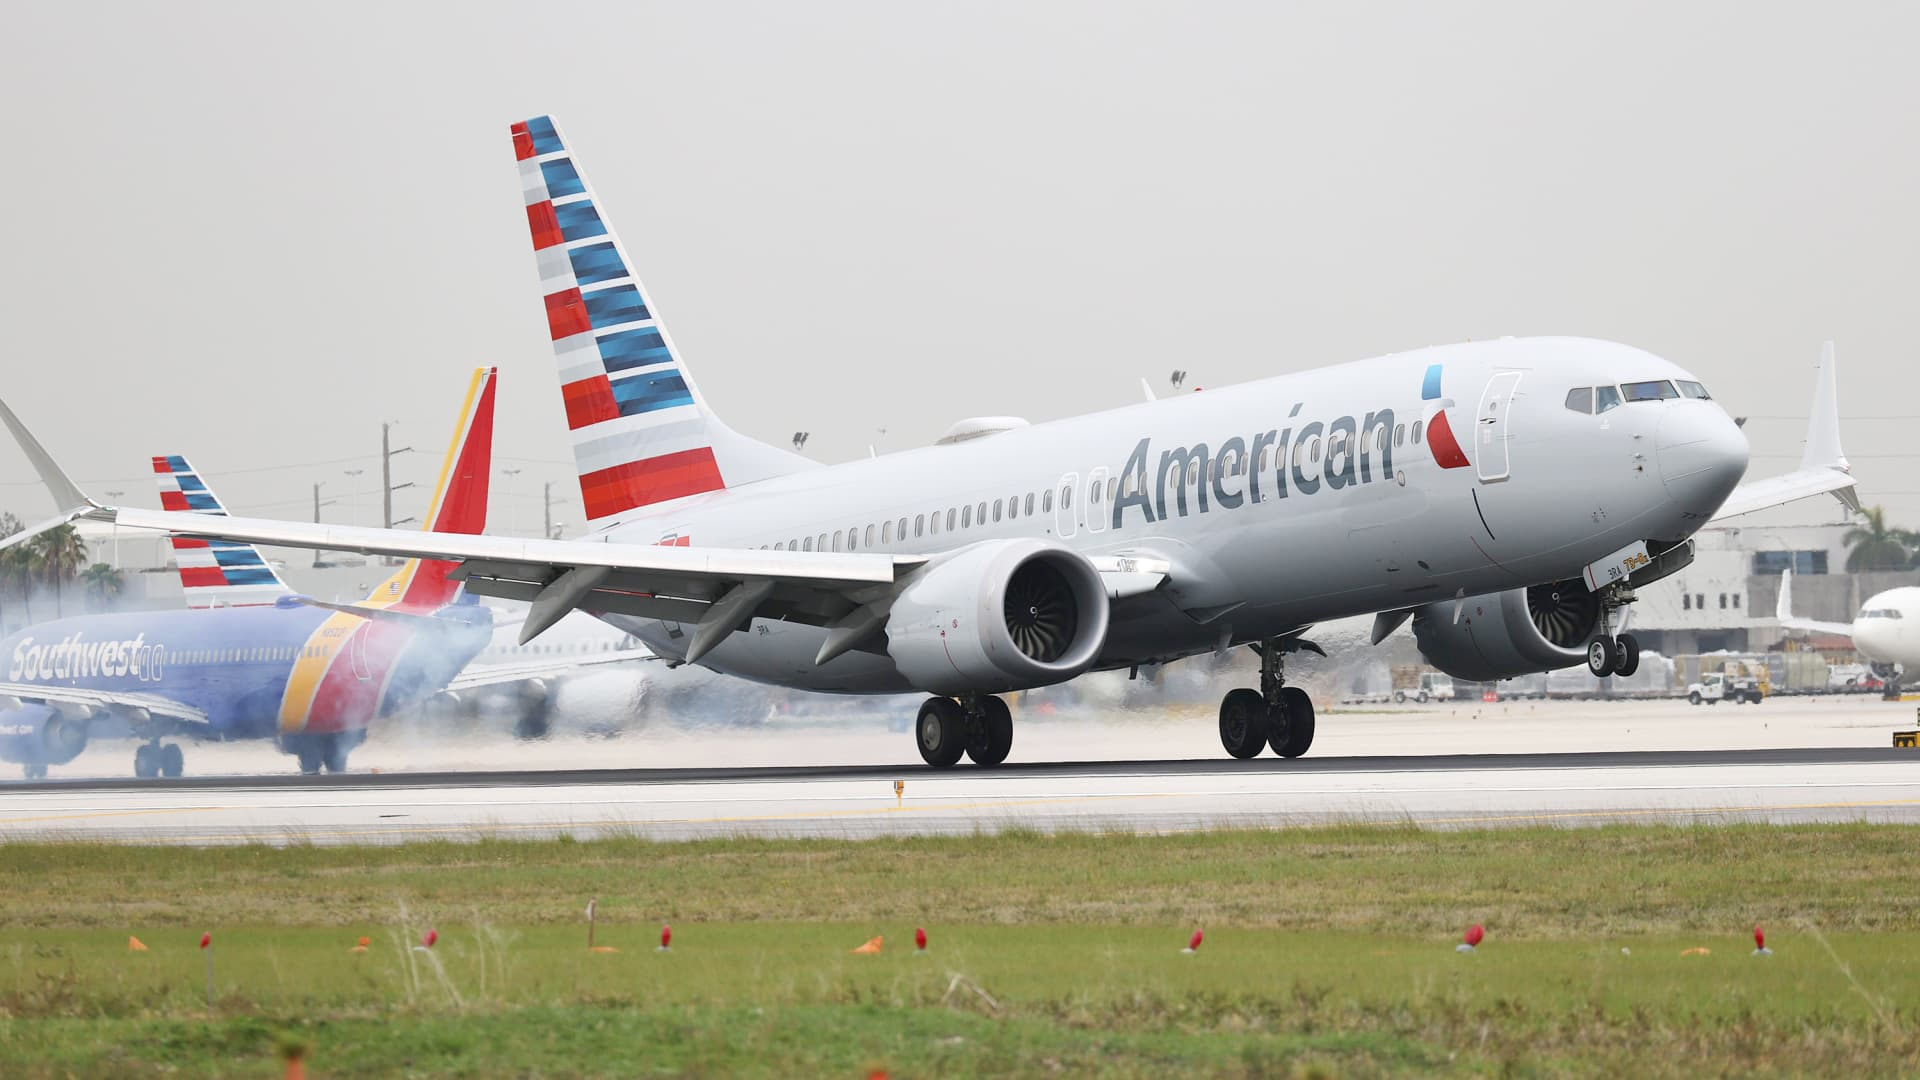 An American Airlines plane lands at the Miami International Airport on June 16, 2021 in Miami, Florida.